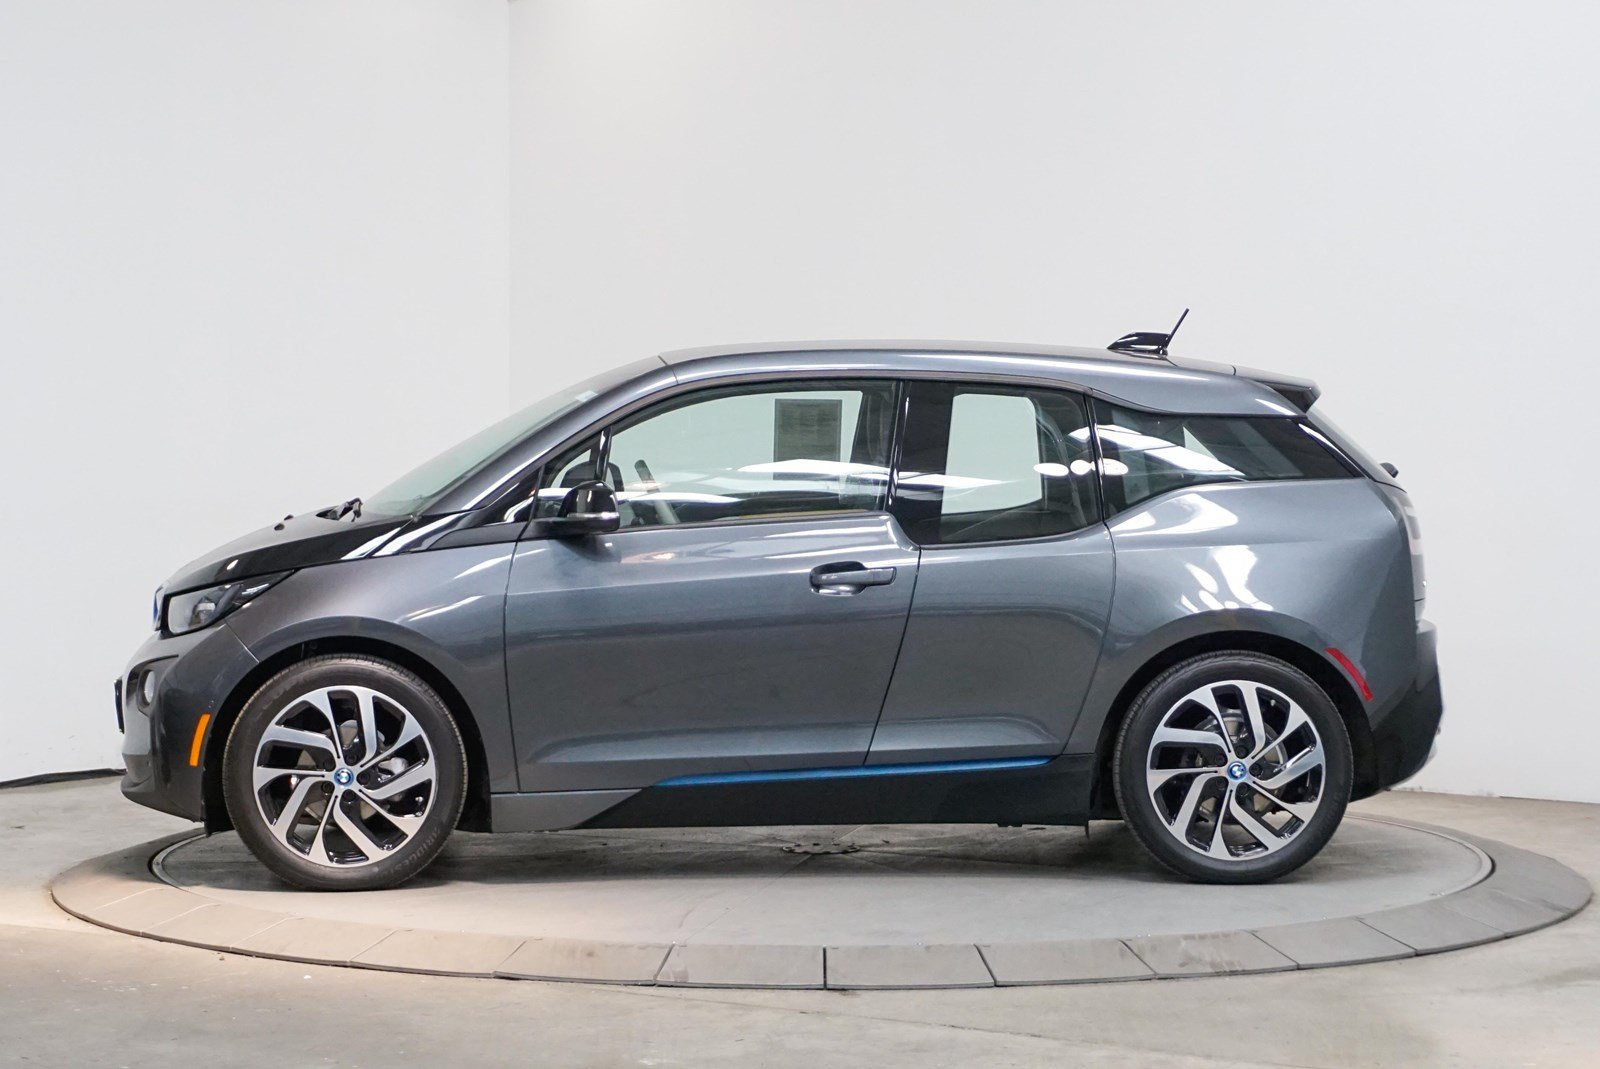 Certified Pre-Owned 2017 BMW i3 4DR HB 94 with RNG ERANGE EXTENDER